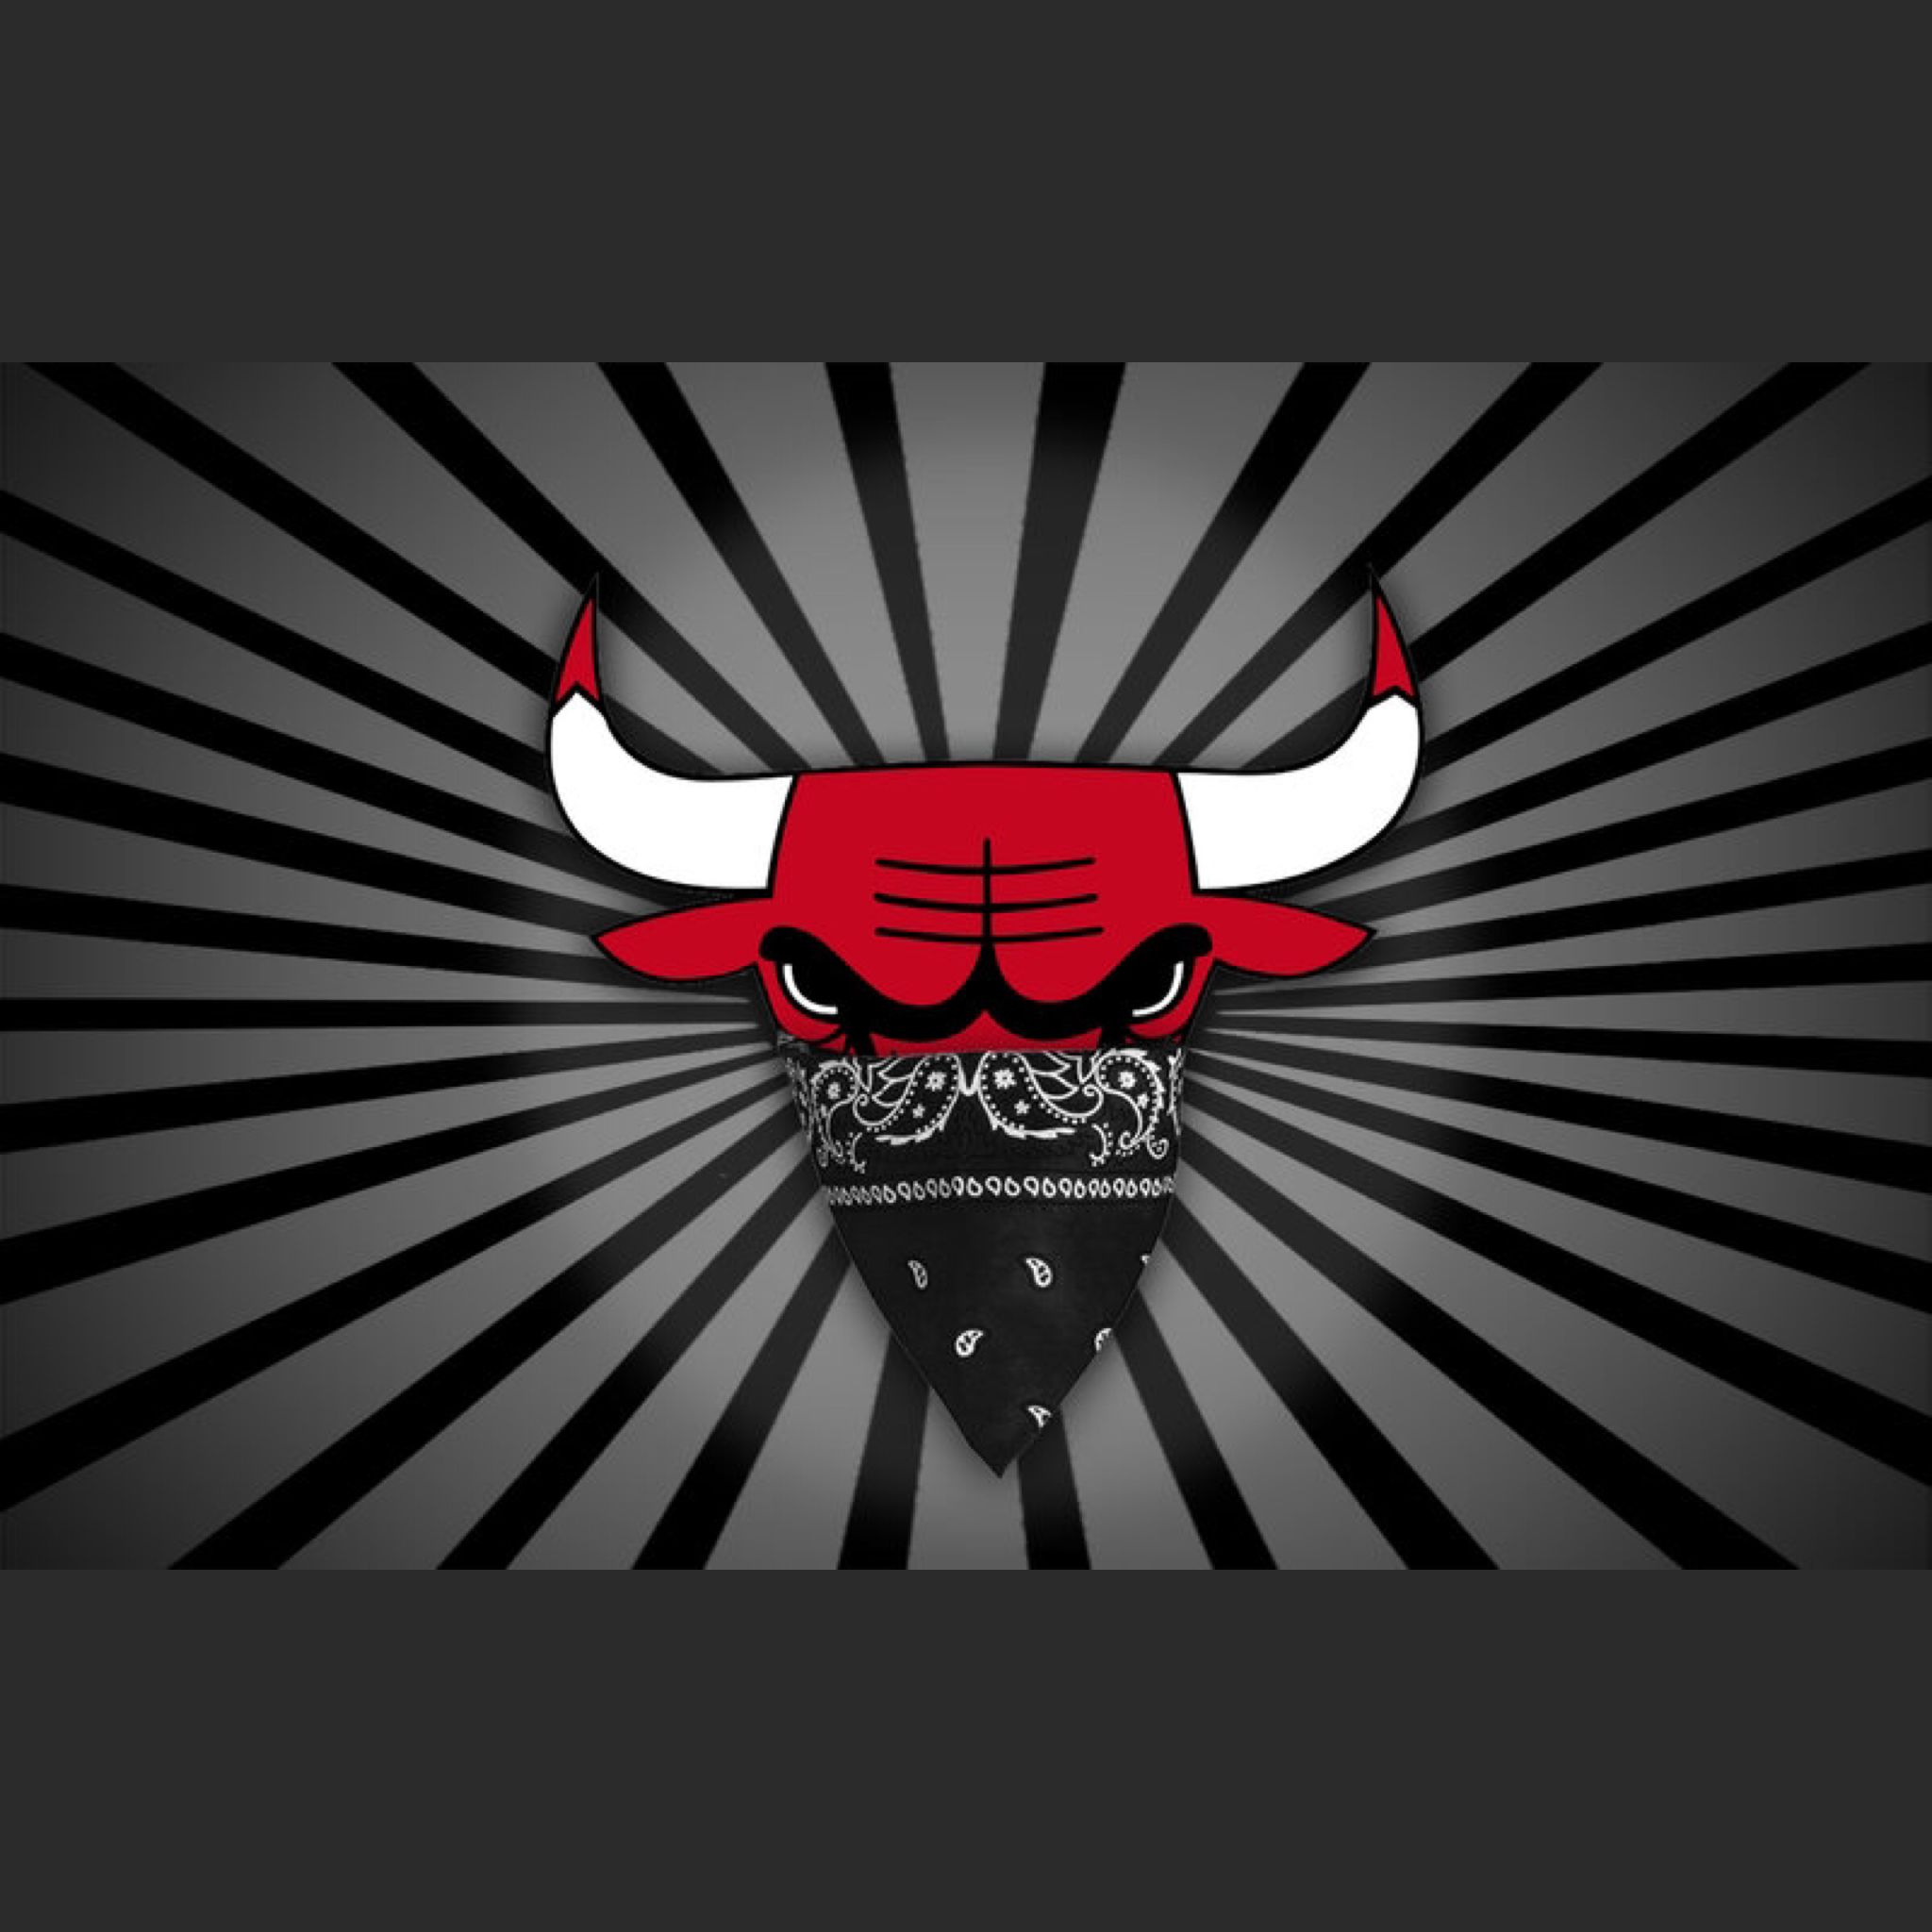 Pin By Nick On I Love My City Logo Chicago Bulls Chicago Bulls